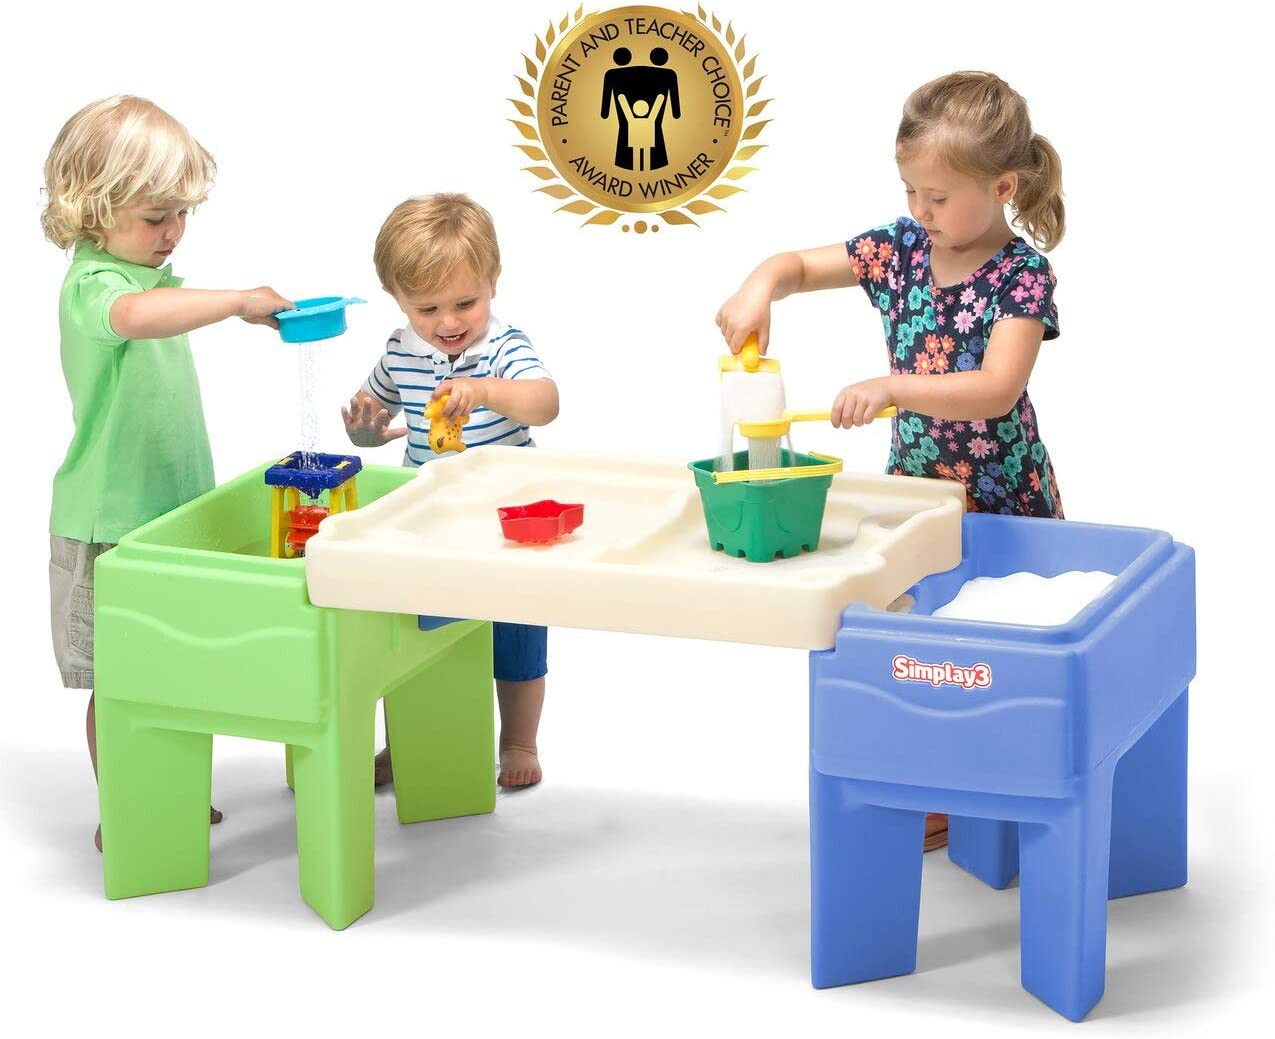 Simplay3 Kids Indoor Outdoor Sand Table with Water New products, world's highest quality popular! and 5 popular Activity